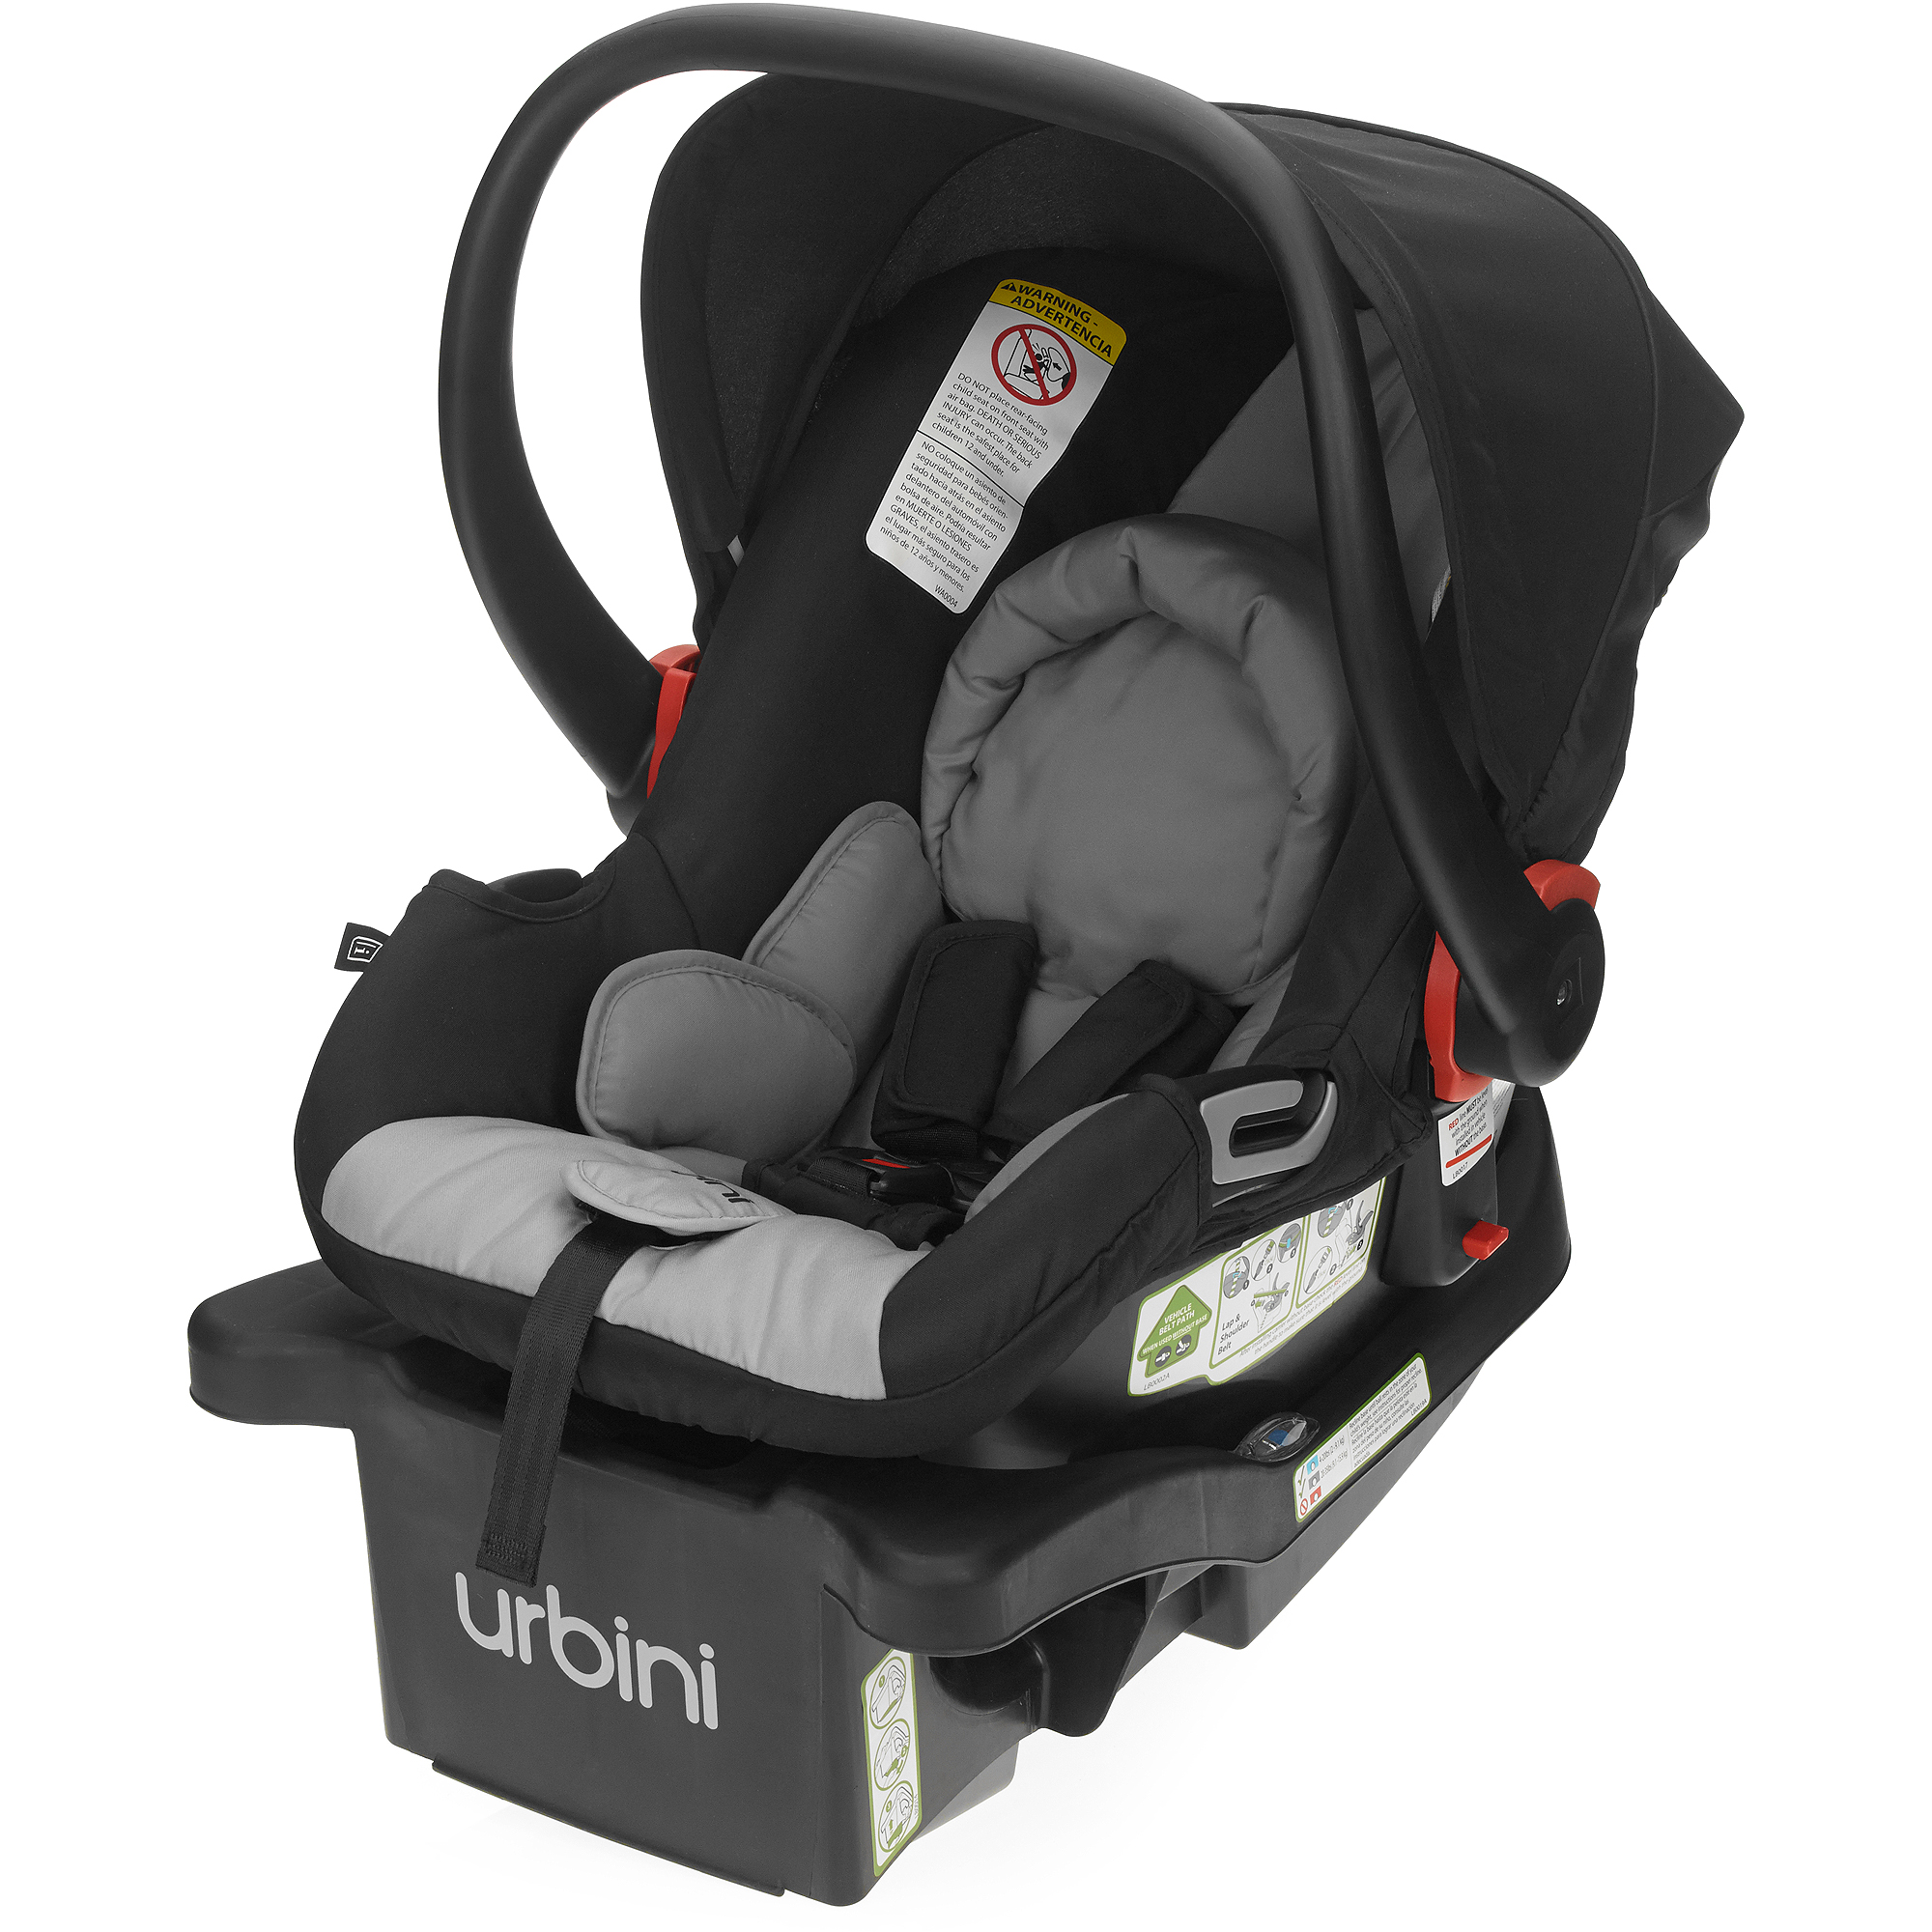 Urbini Petal Infant Car Seat